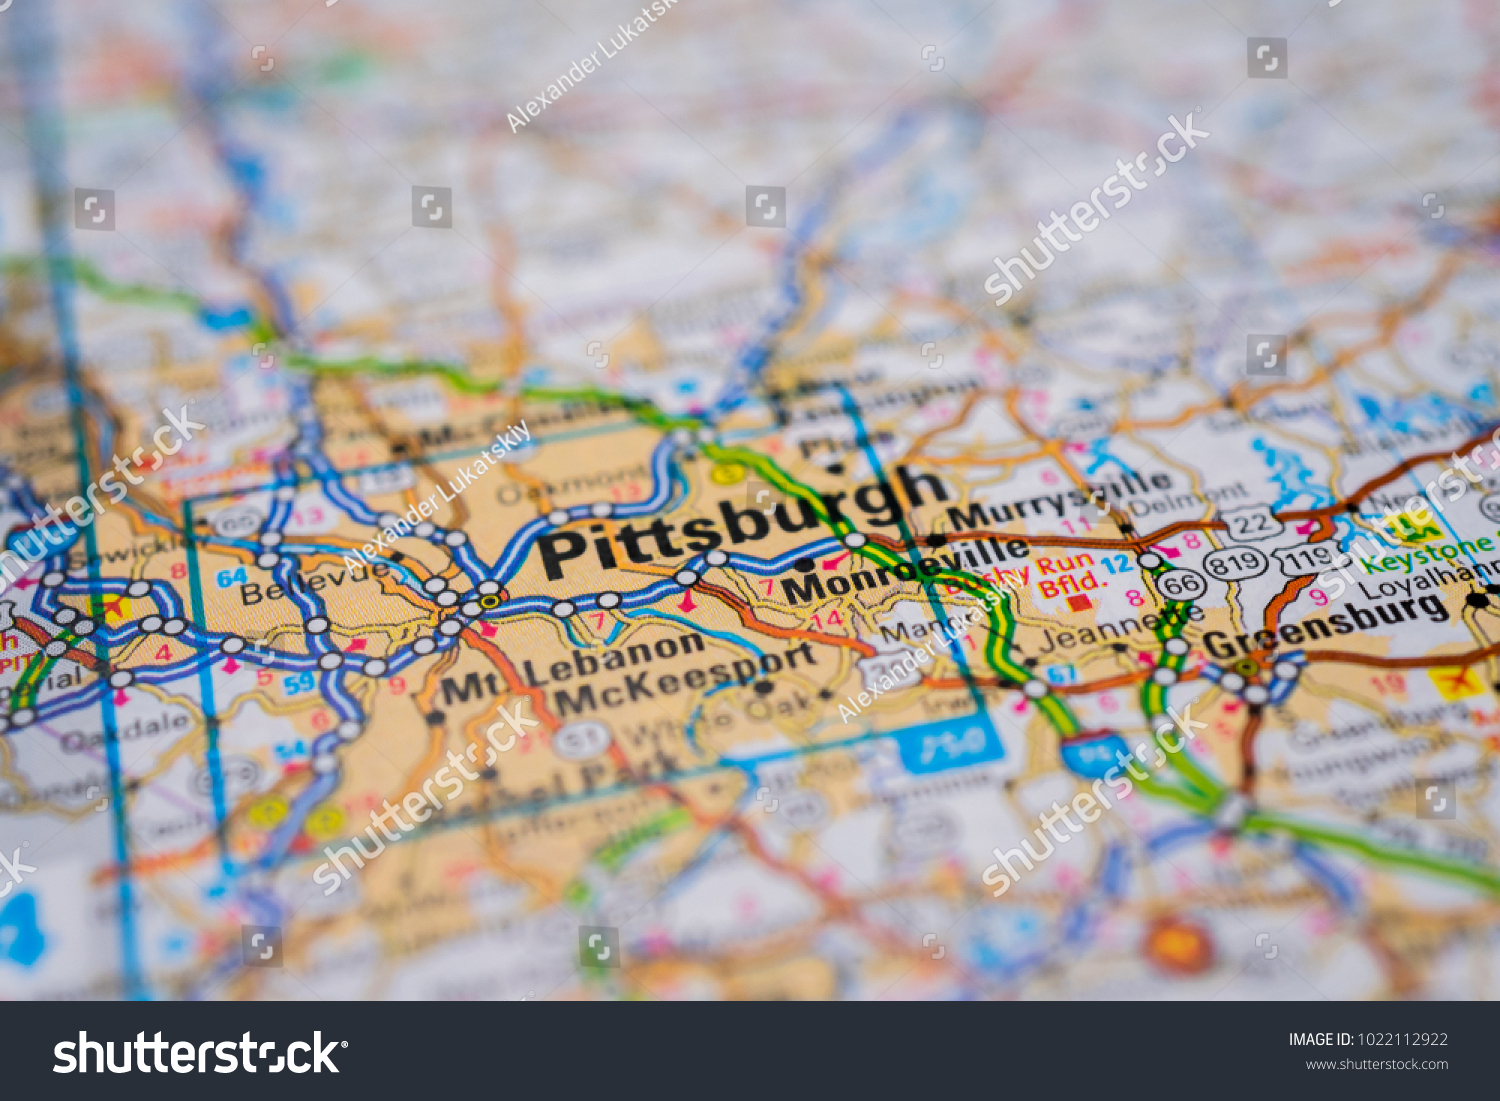 Pittsburgh On Usa Map Stock Photo Image RoyaltyFree 1022112922